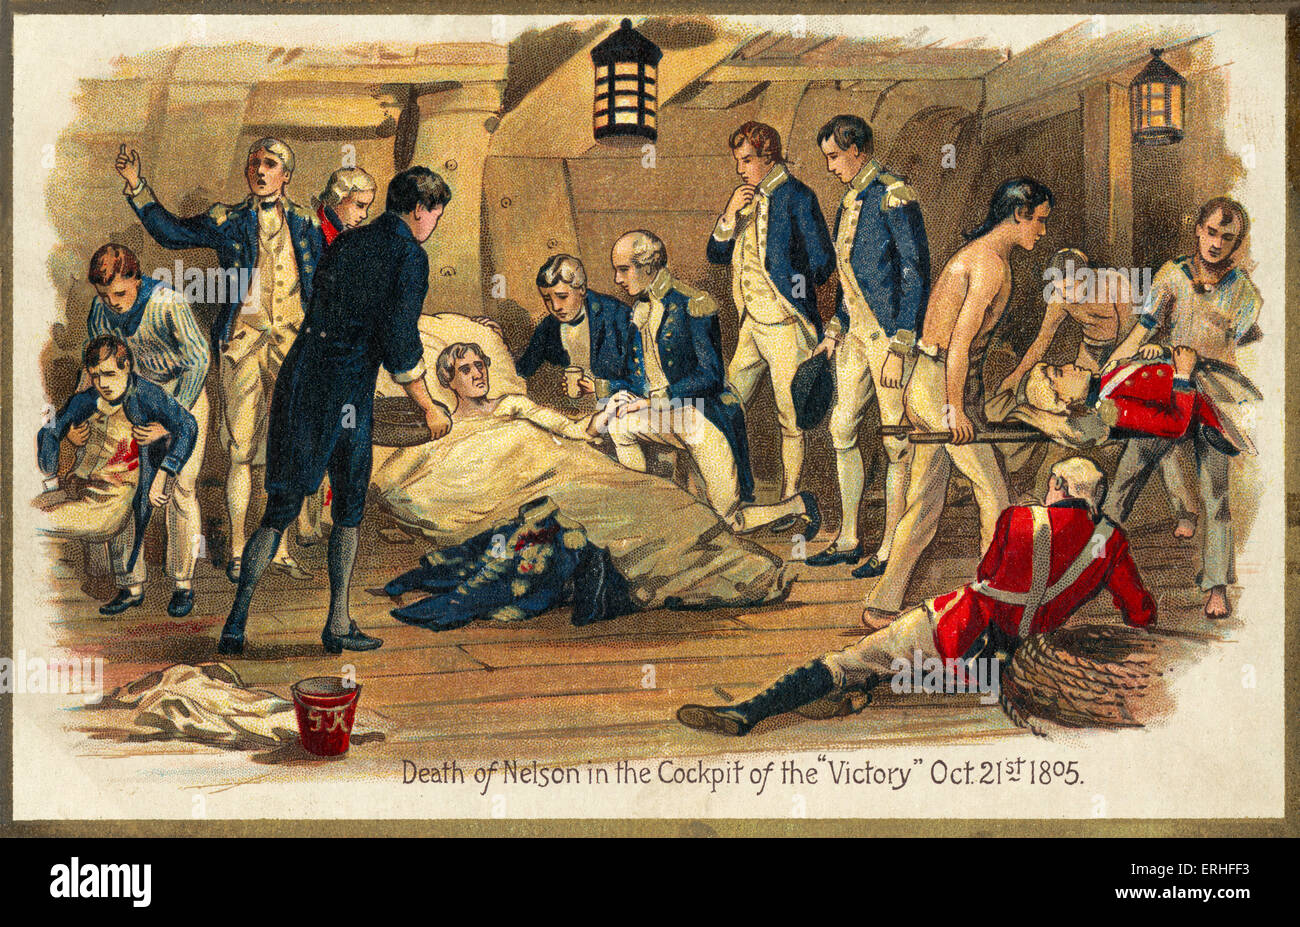 Admiral Horatio Nelson - postcard depicting 'Death of Nelson in the Cockpit of 'Victory'' - 21 October - Stock Image